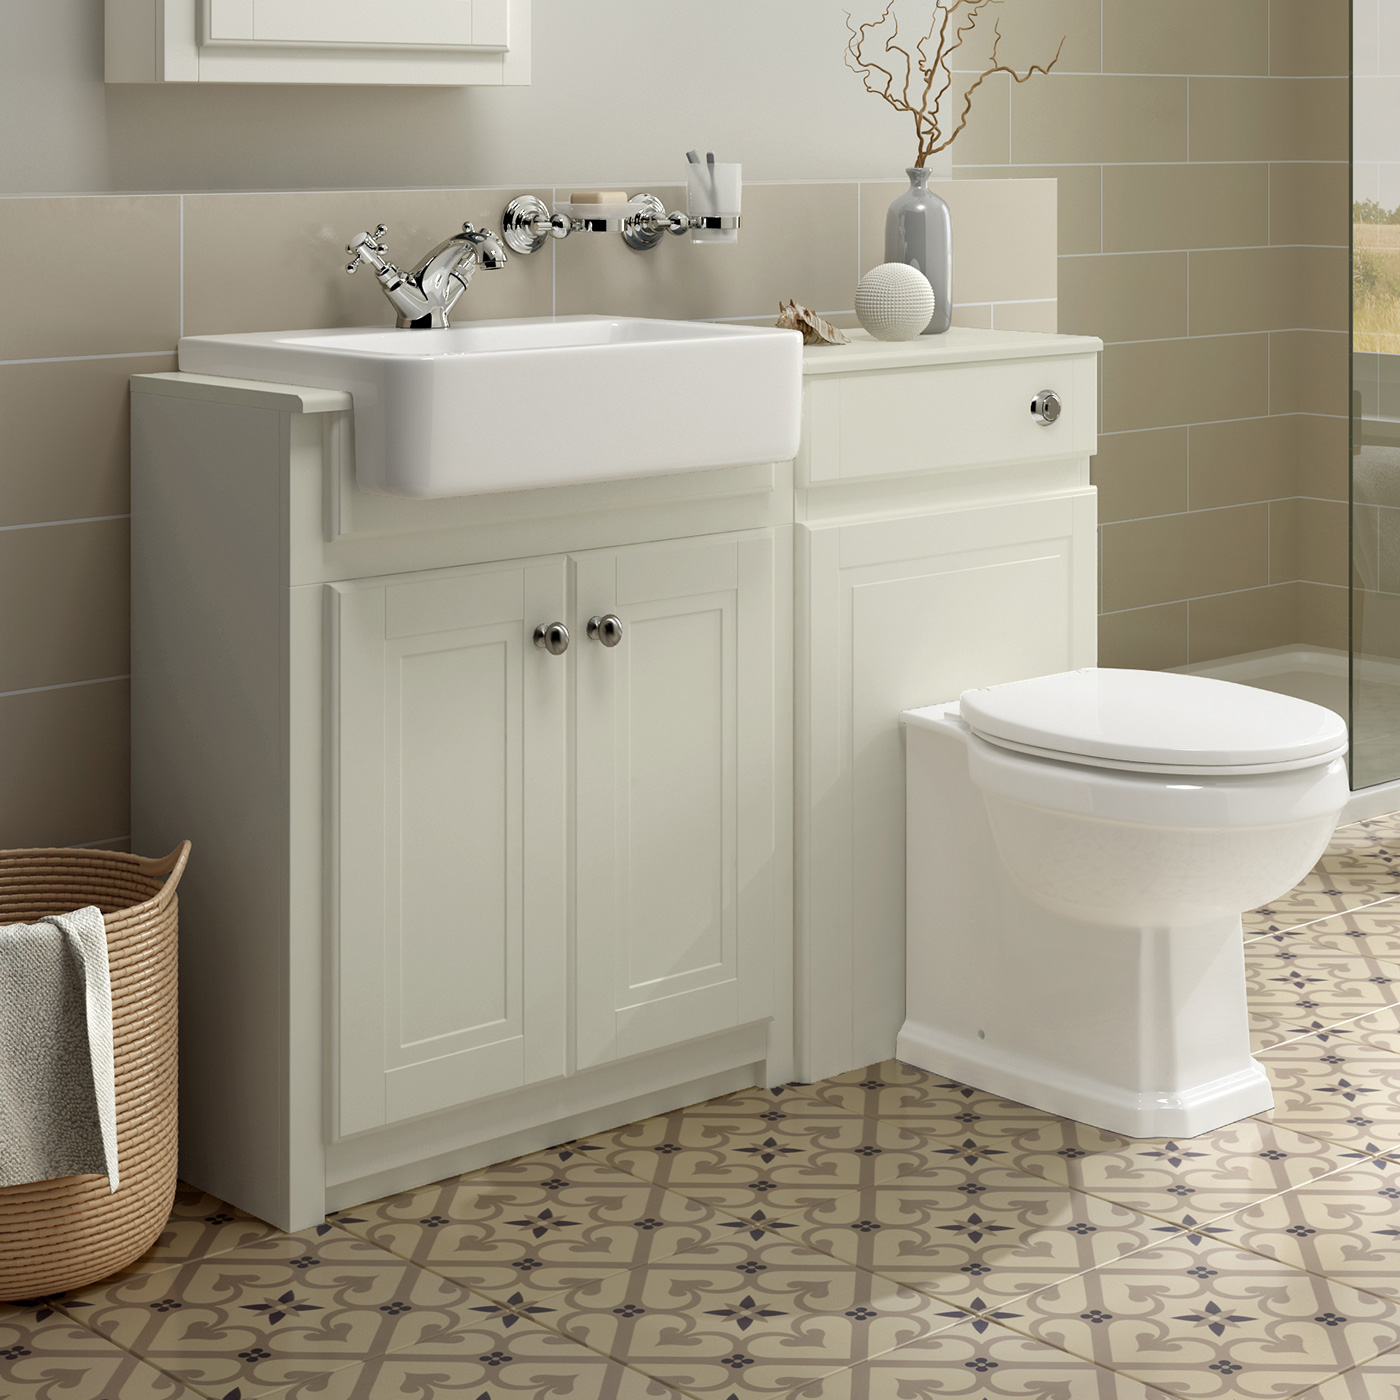 Traditional combined bathroom furniture sink basin vanity - Bathroom combination vanity units ...